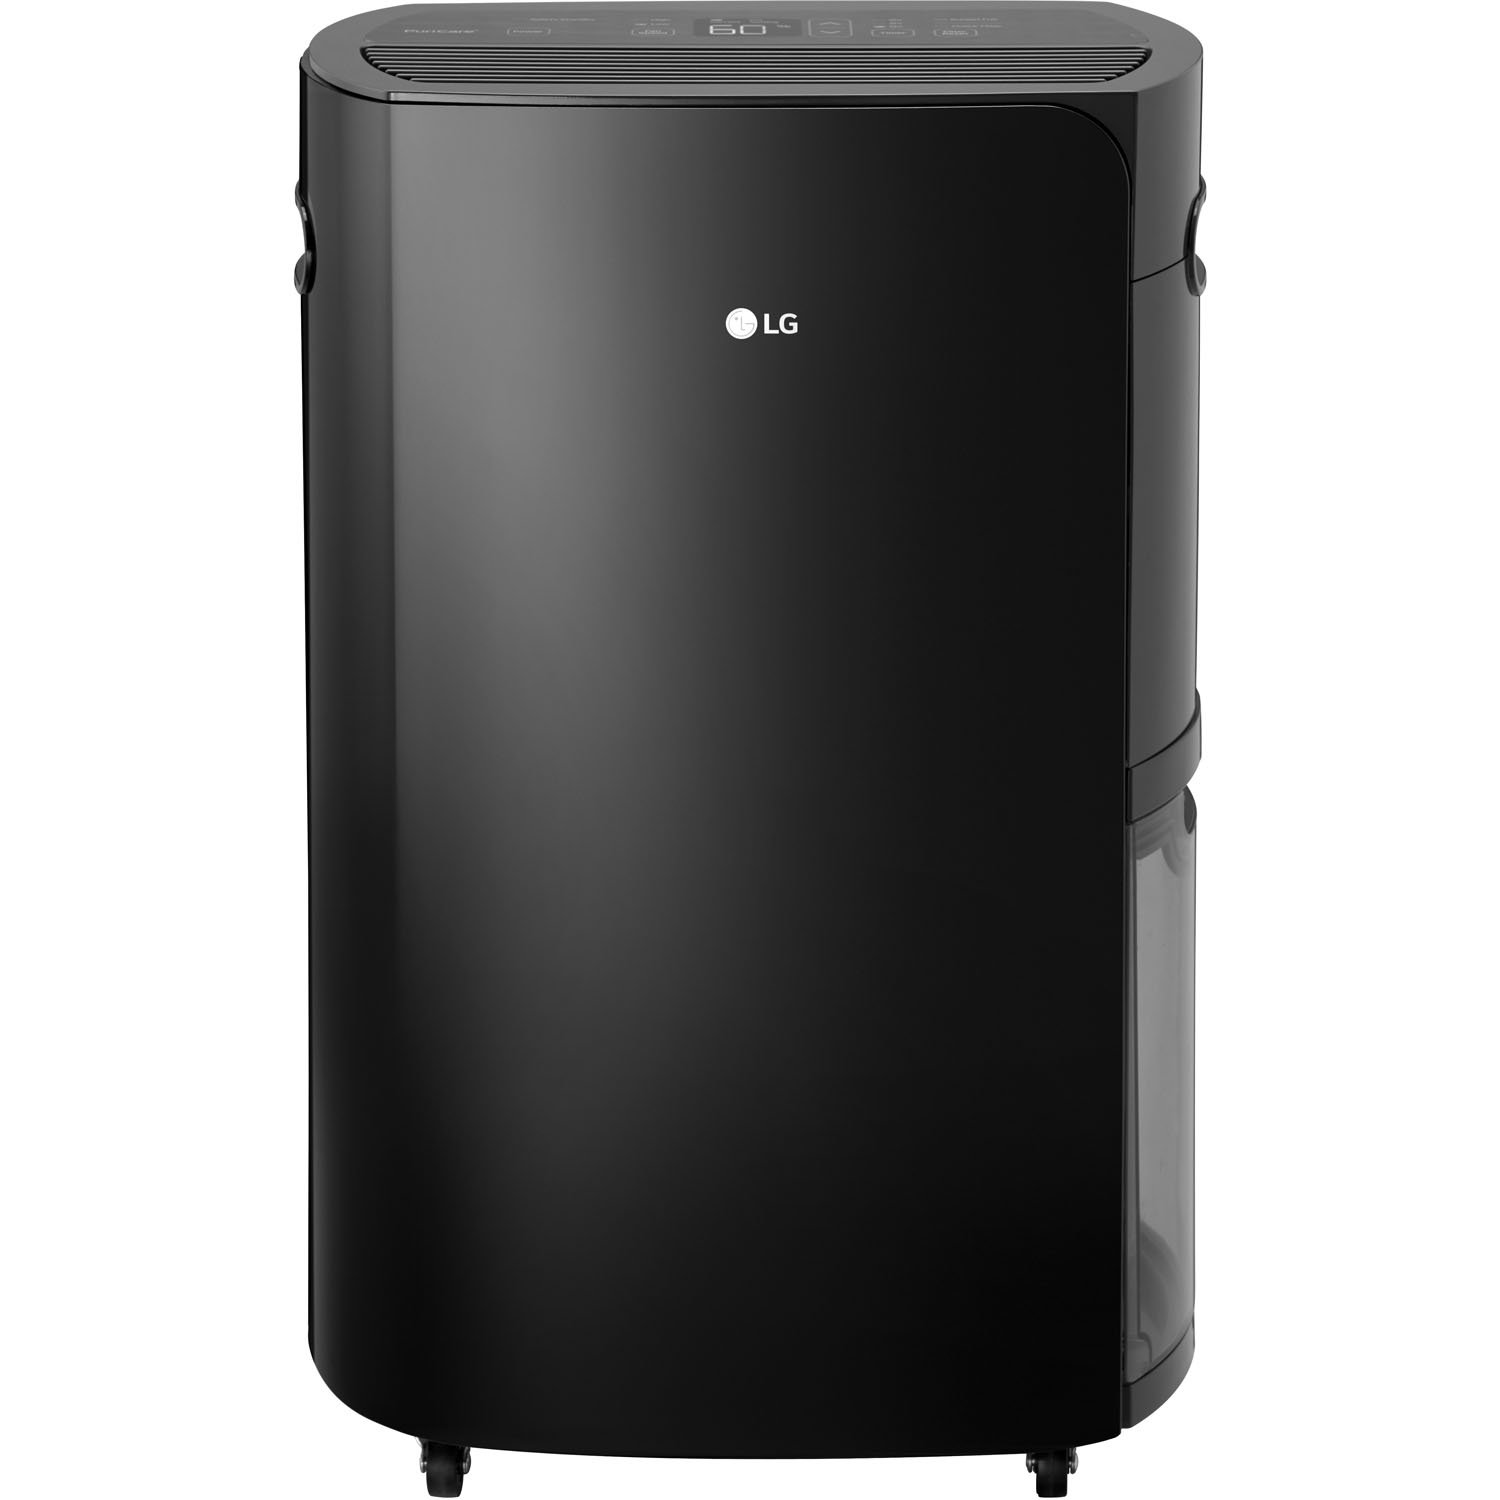 LG Energy Star PuriCare 55-Pint Dehumidifier in Black UD551GKG3